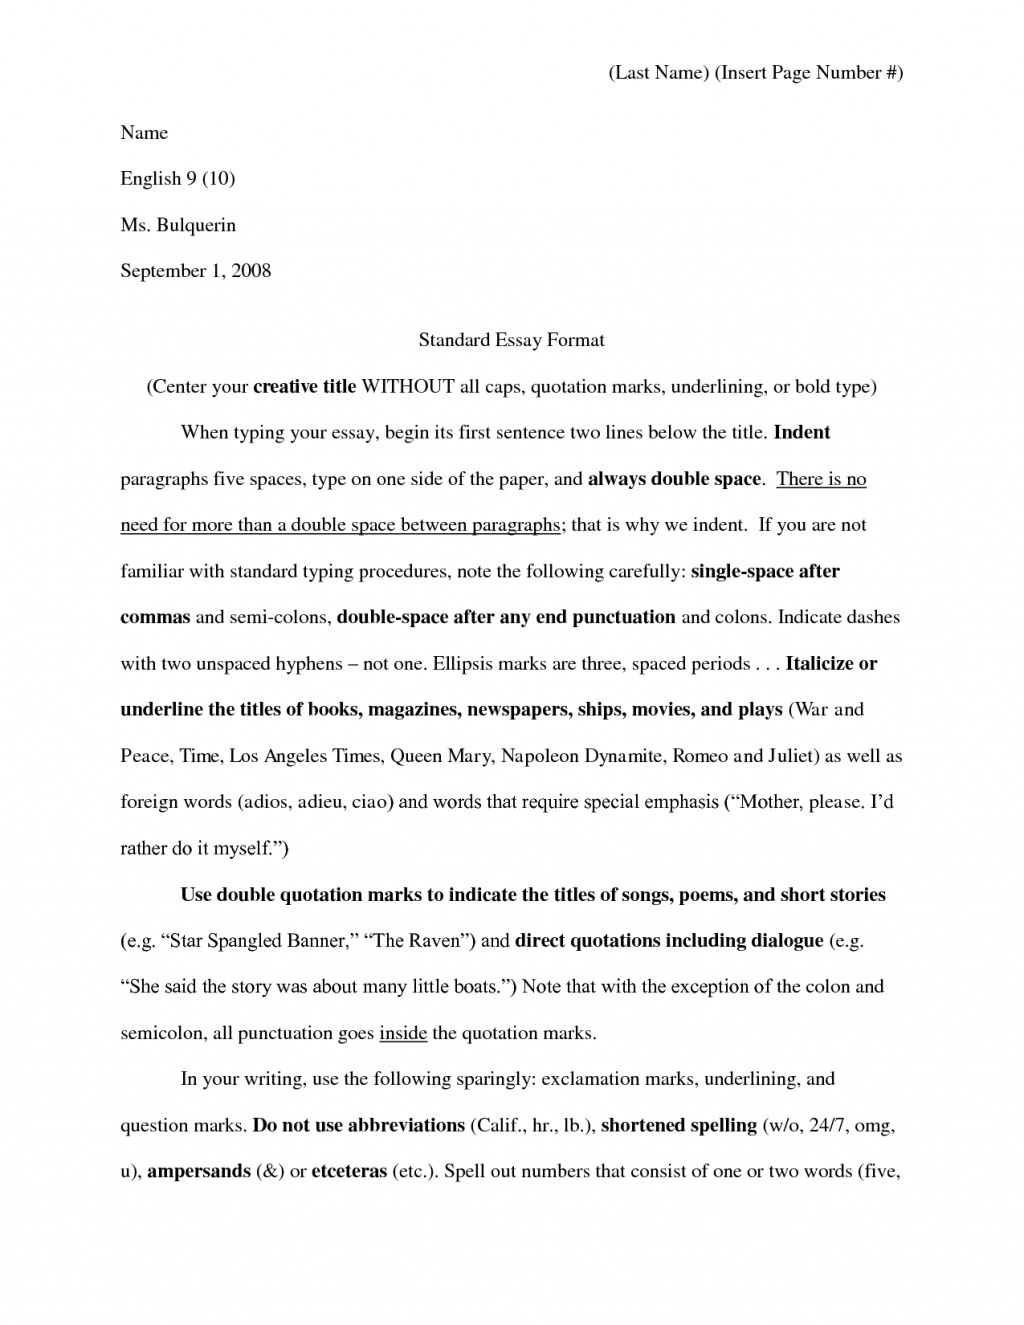 014 College Admission Essay Format Proper Heading For Application Writing Awesome Guidelines Example Examples Large